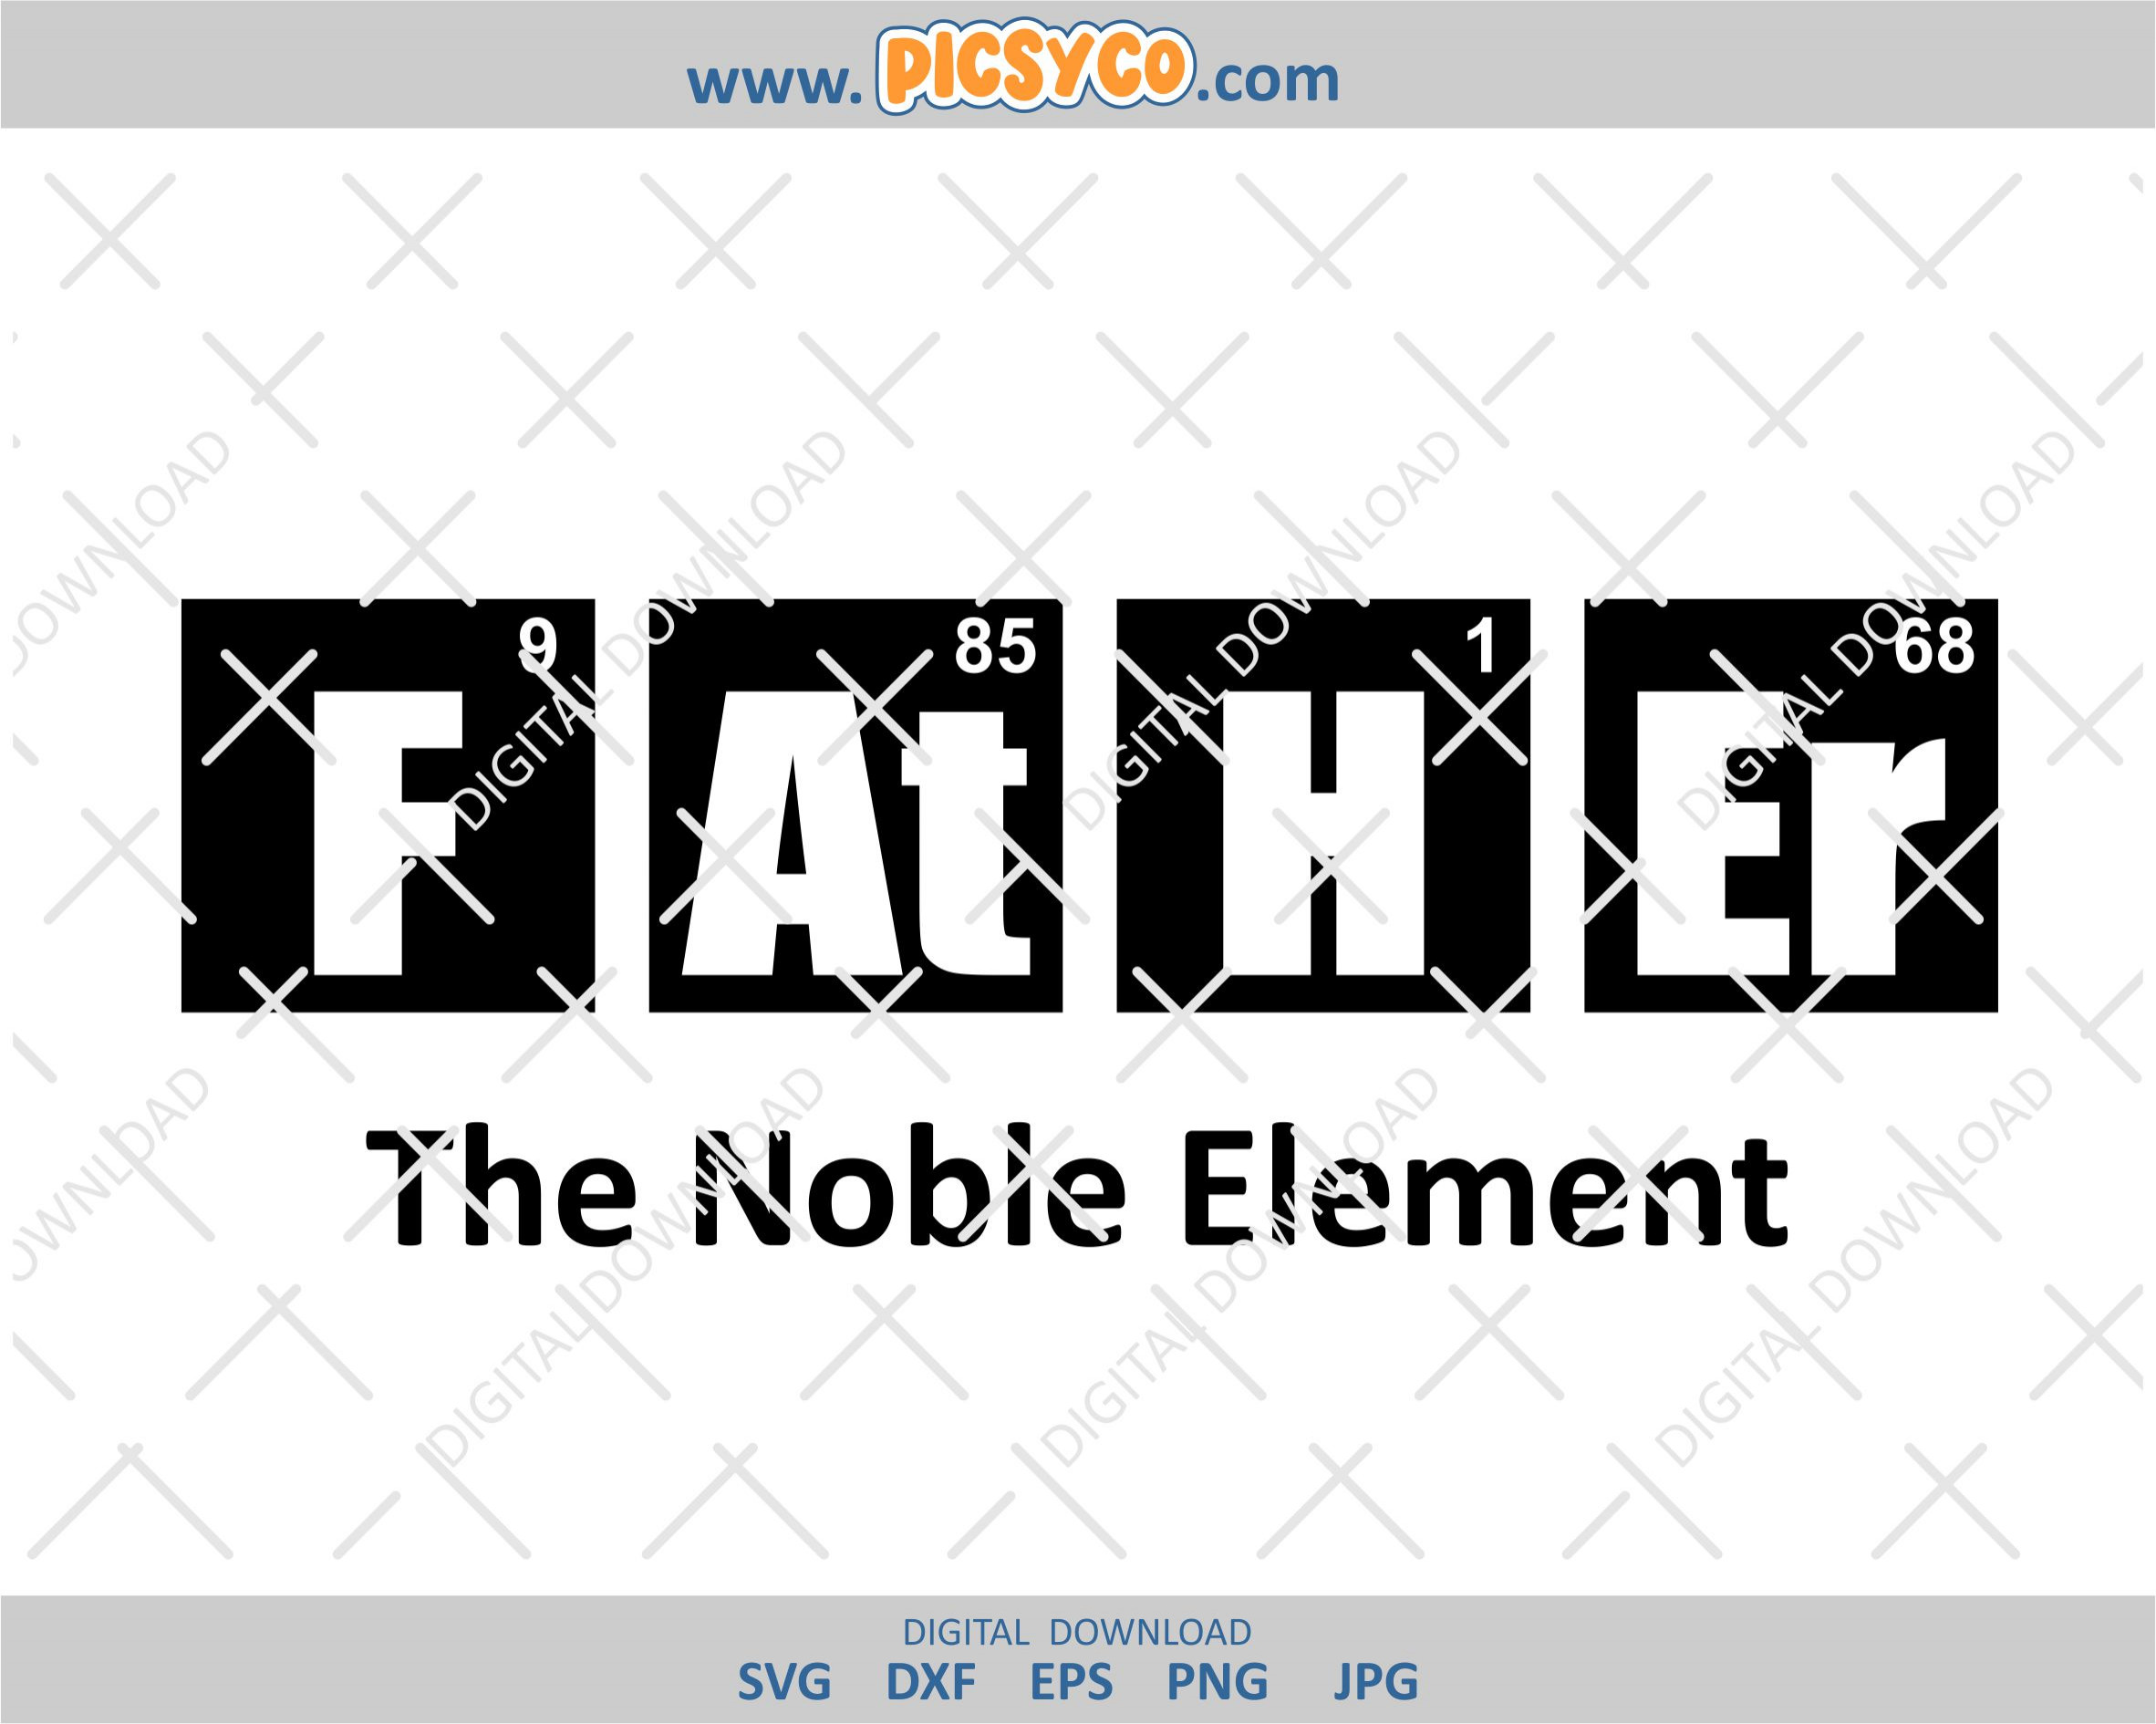 Free In catholic countries of europe. Father The Noble Element Svg Fathers Day Svg Best Dad Svg Dad Png Beard Png Family Shirt Picsyco SVG, PNG, EPS, DXF File